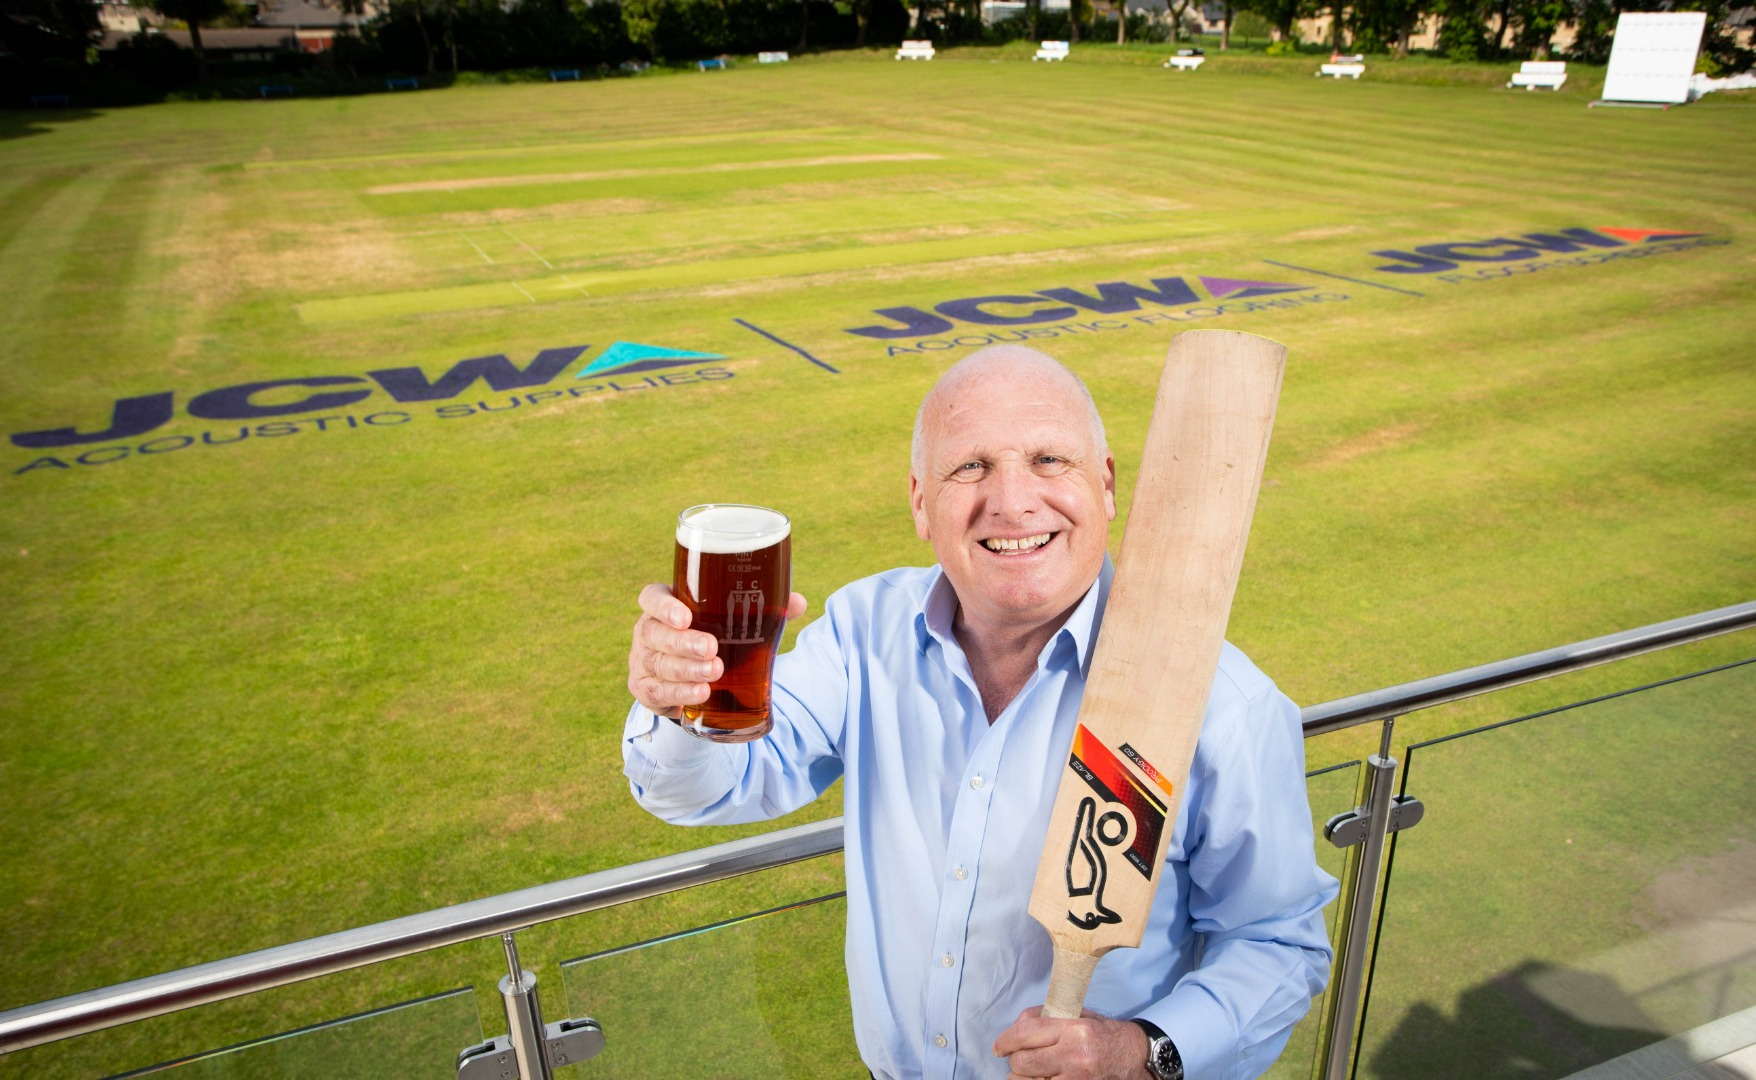 JCW sponsors community cricket club beer festival